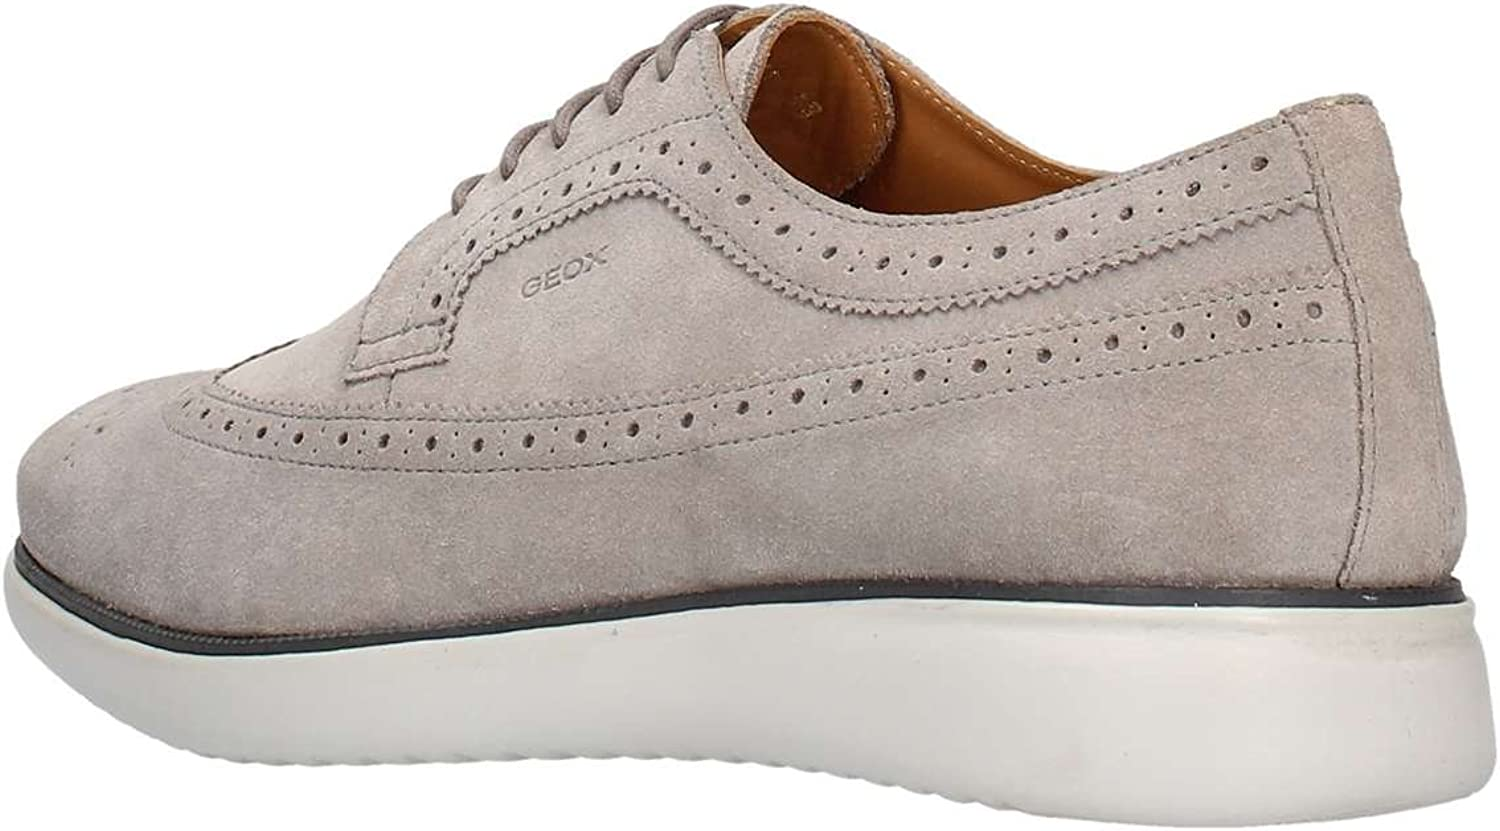 aficionado Relativo Sin sentido  Geox Mens Mens Winfred Shoes in Taupe: Amazon.co.uk: Shoes & Bags